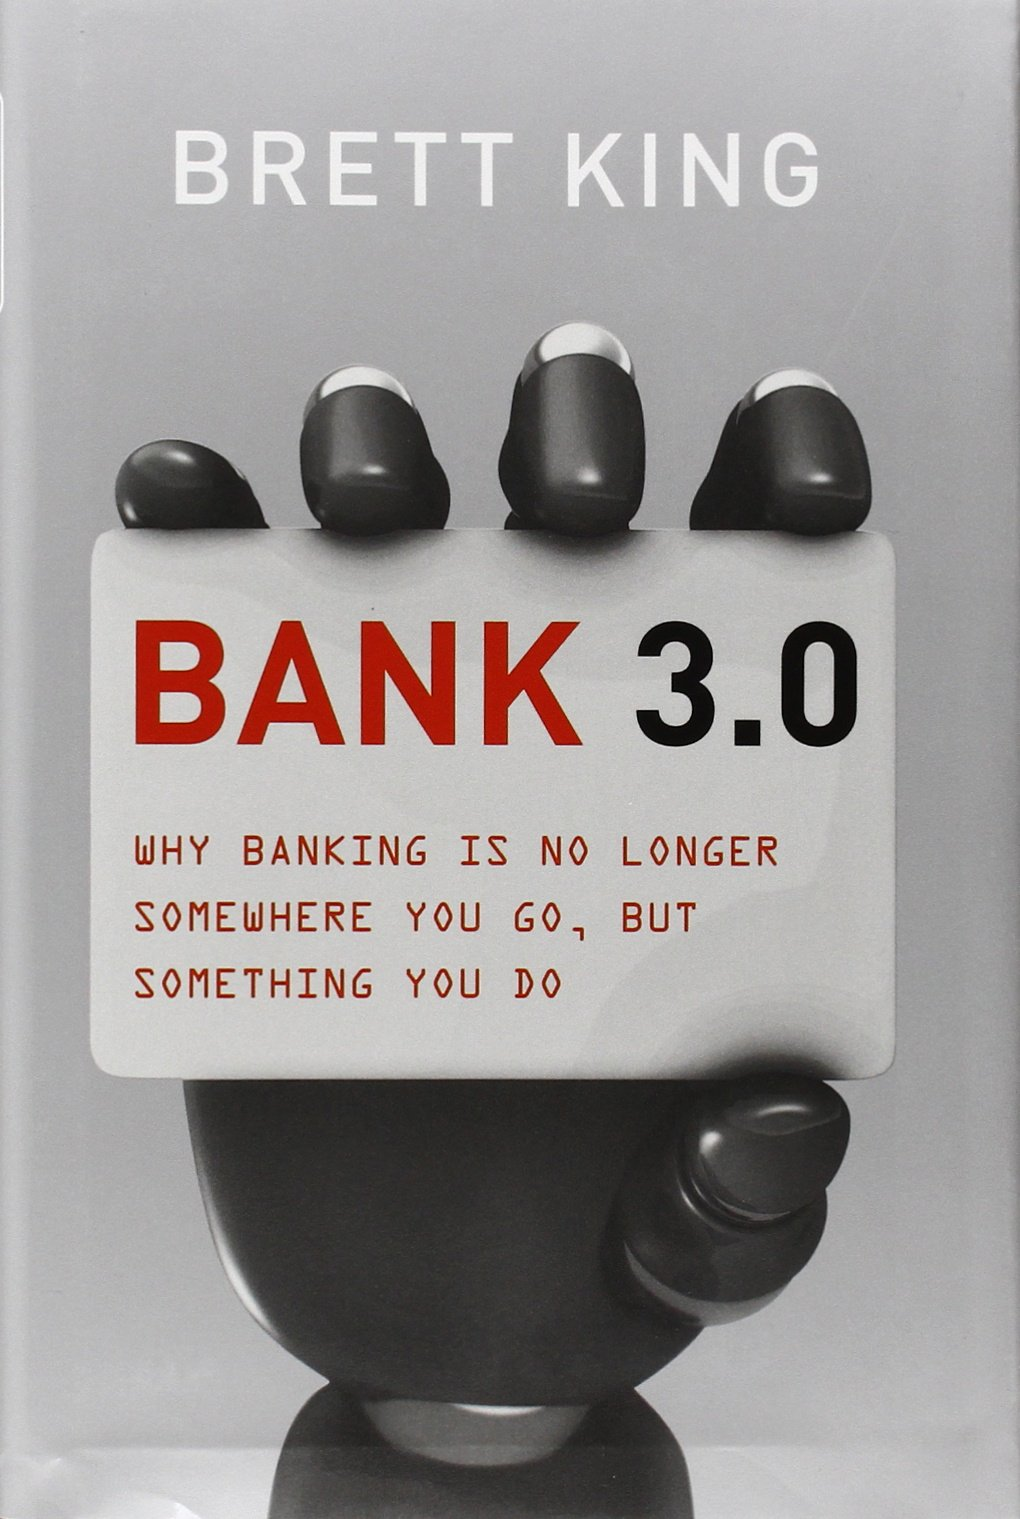 Bank 30 why banking is no longer somewhere you go but something bank 30 why banking is no longer somewhere you go but something you do livros na amazon brasil 9781118589632 fandeluxe Images